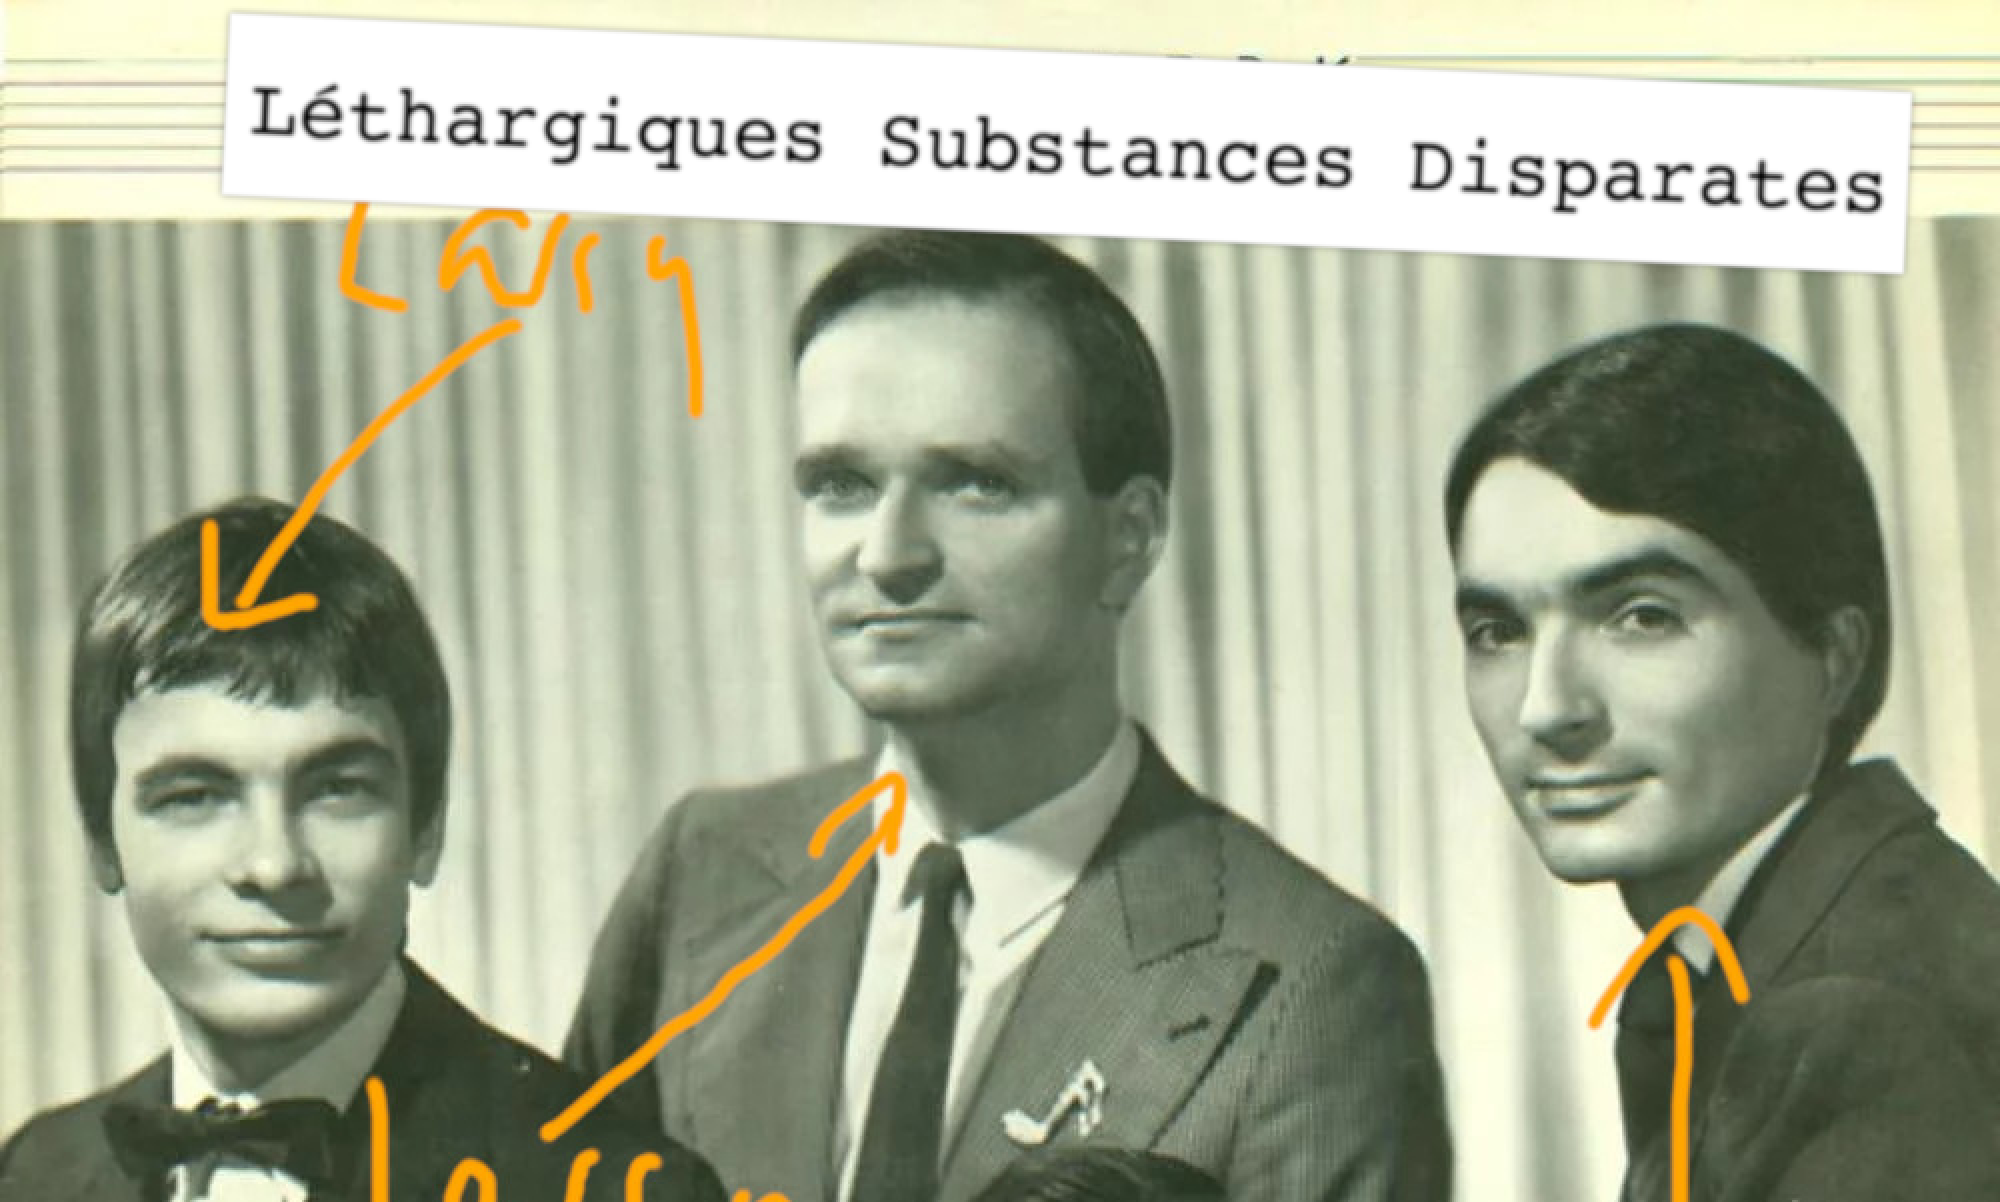 Léthargiques substances disparates